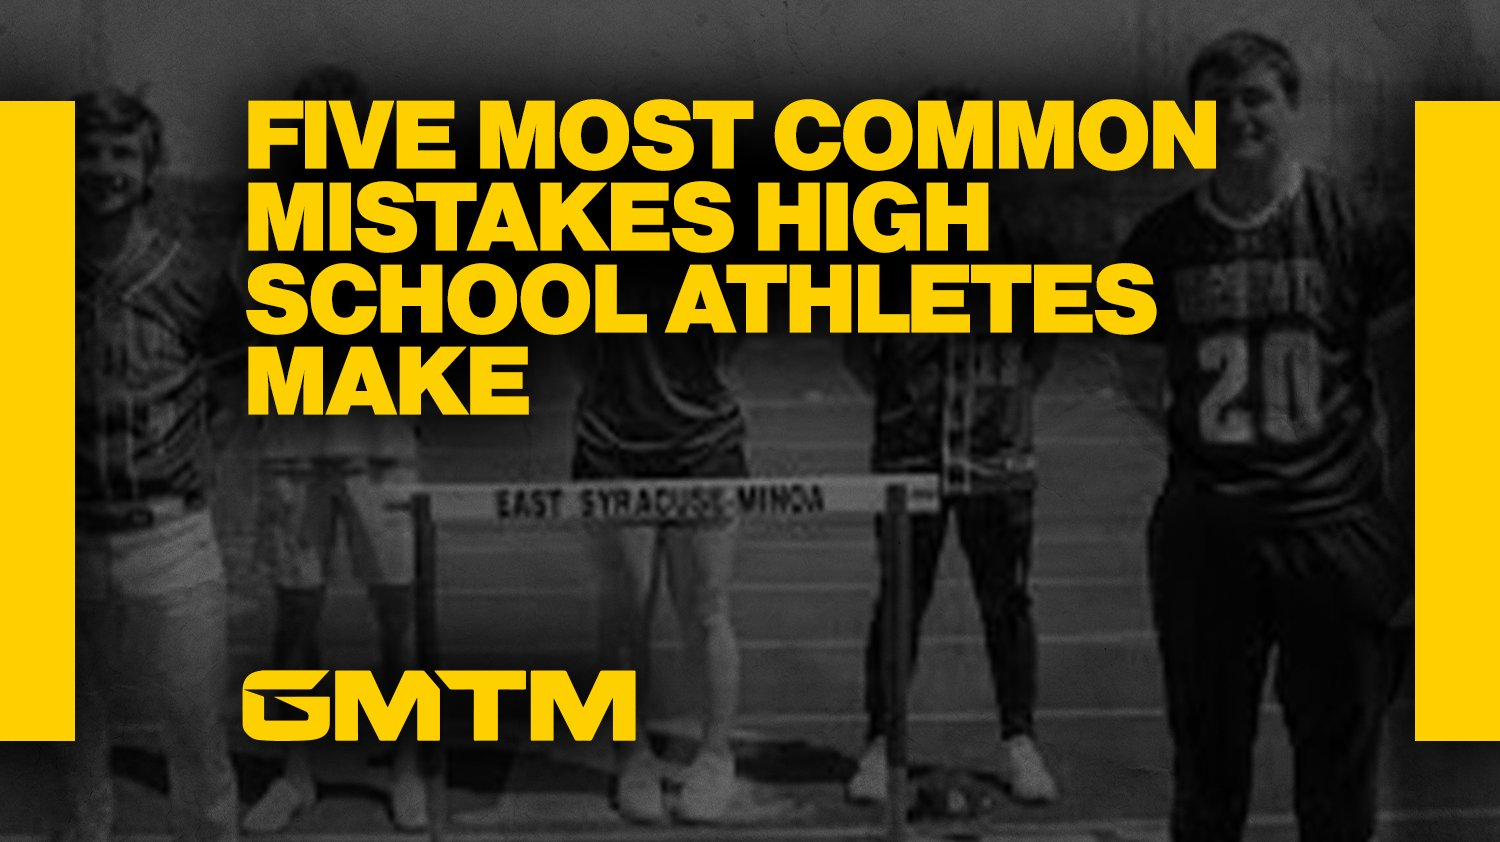 The Five Most Common Mistakes High School Athletes Make